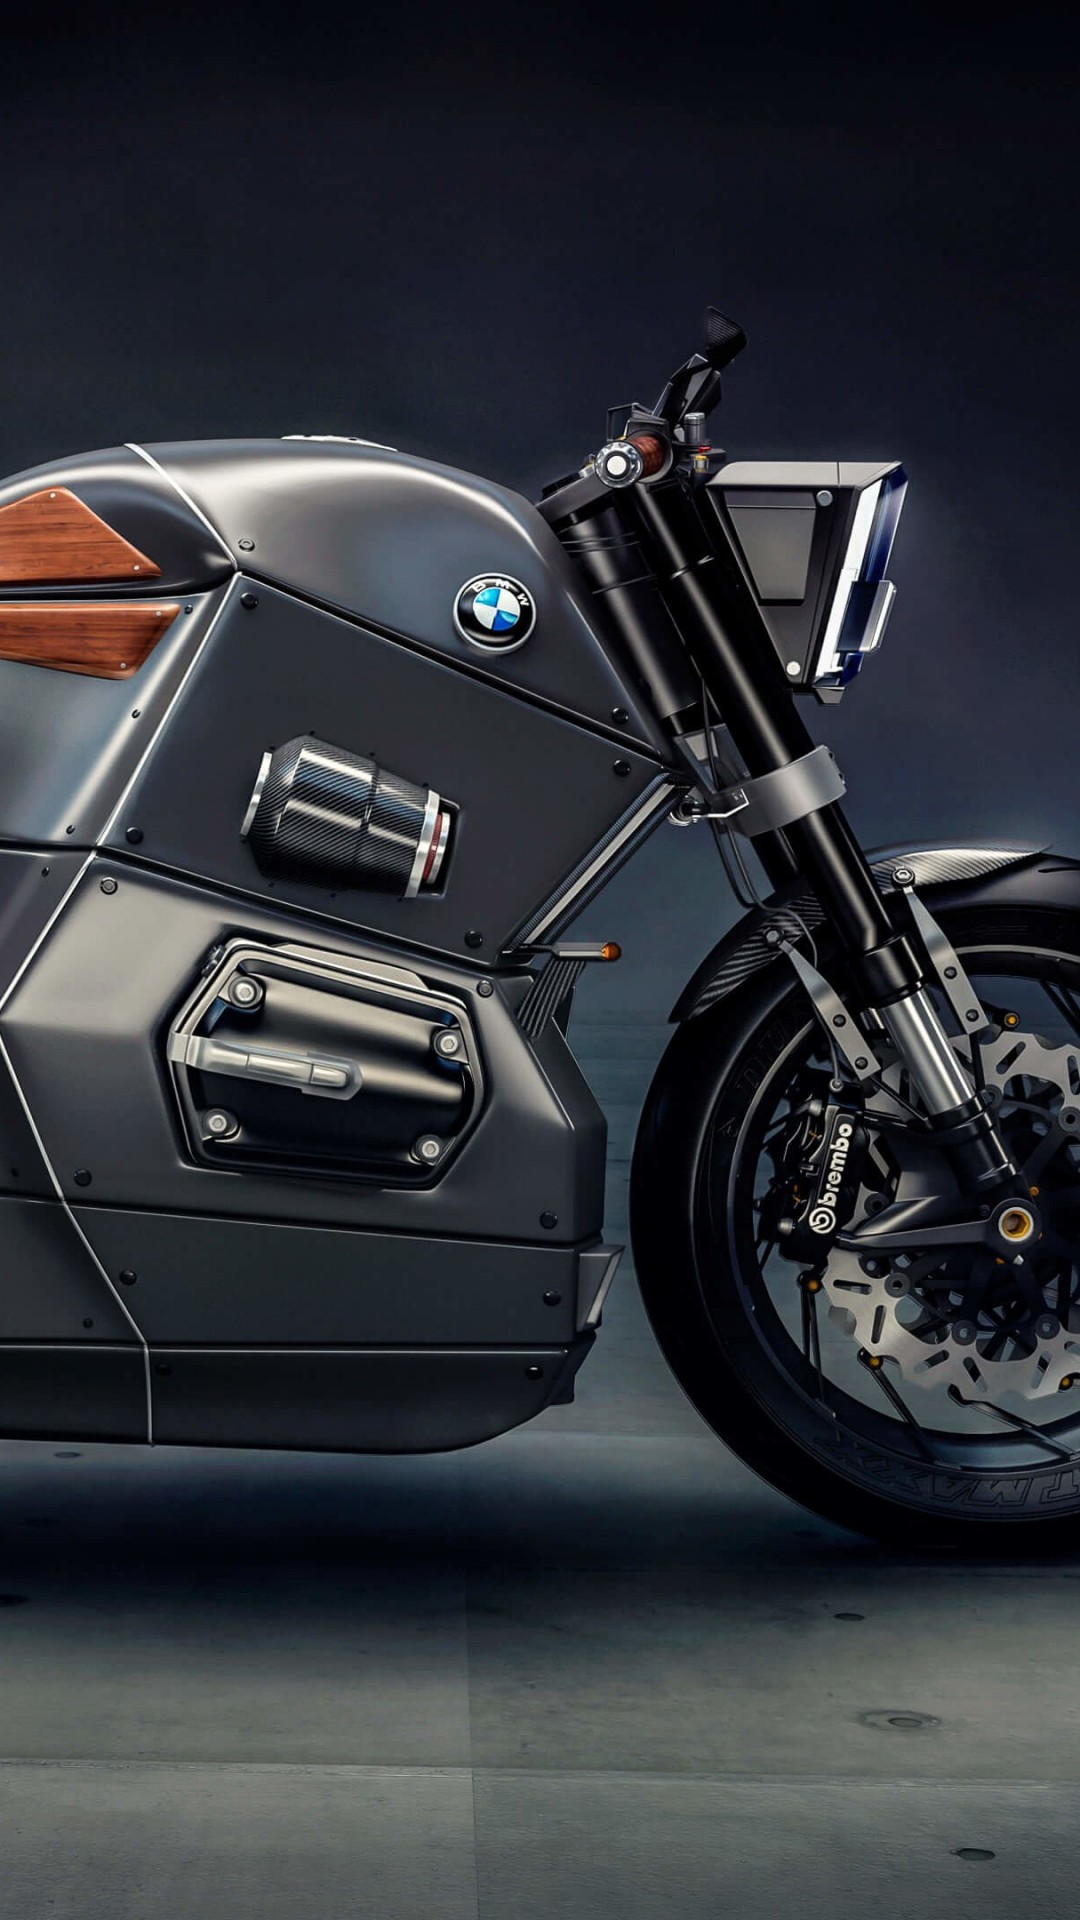 BMW M Bike Concept Wallpaper for LG G2